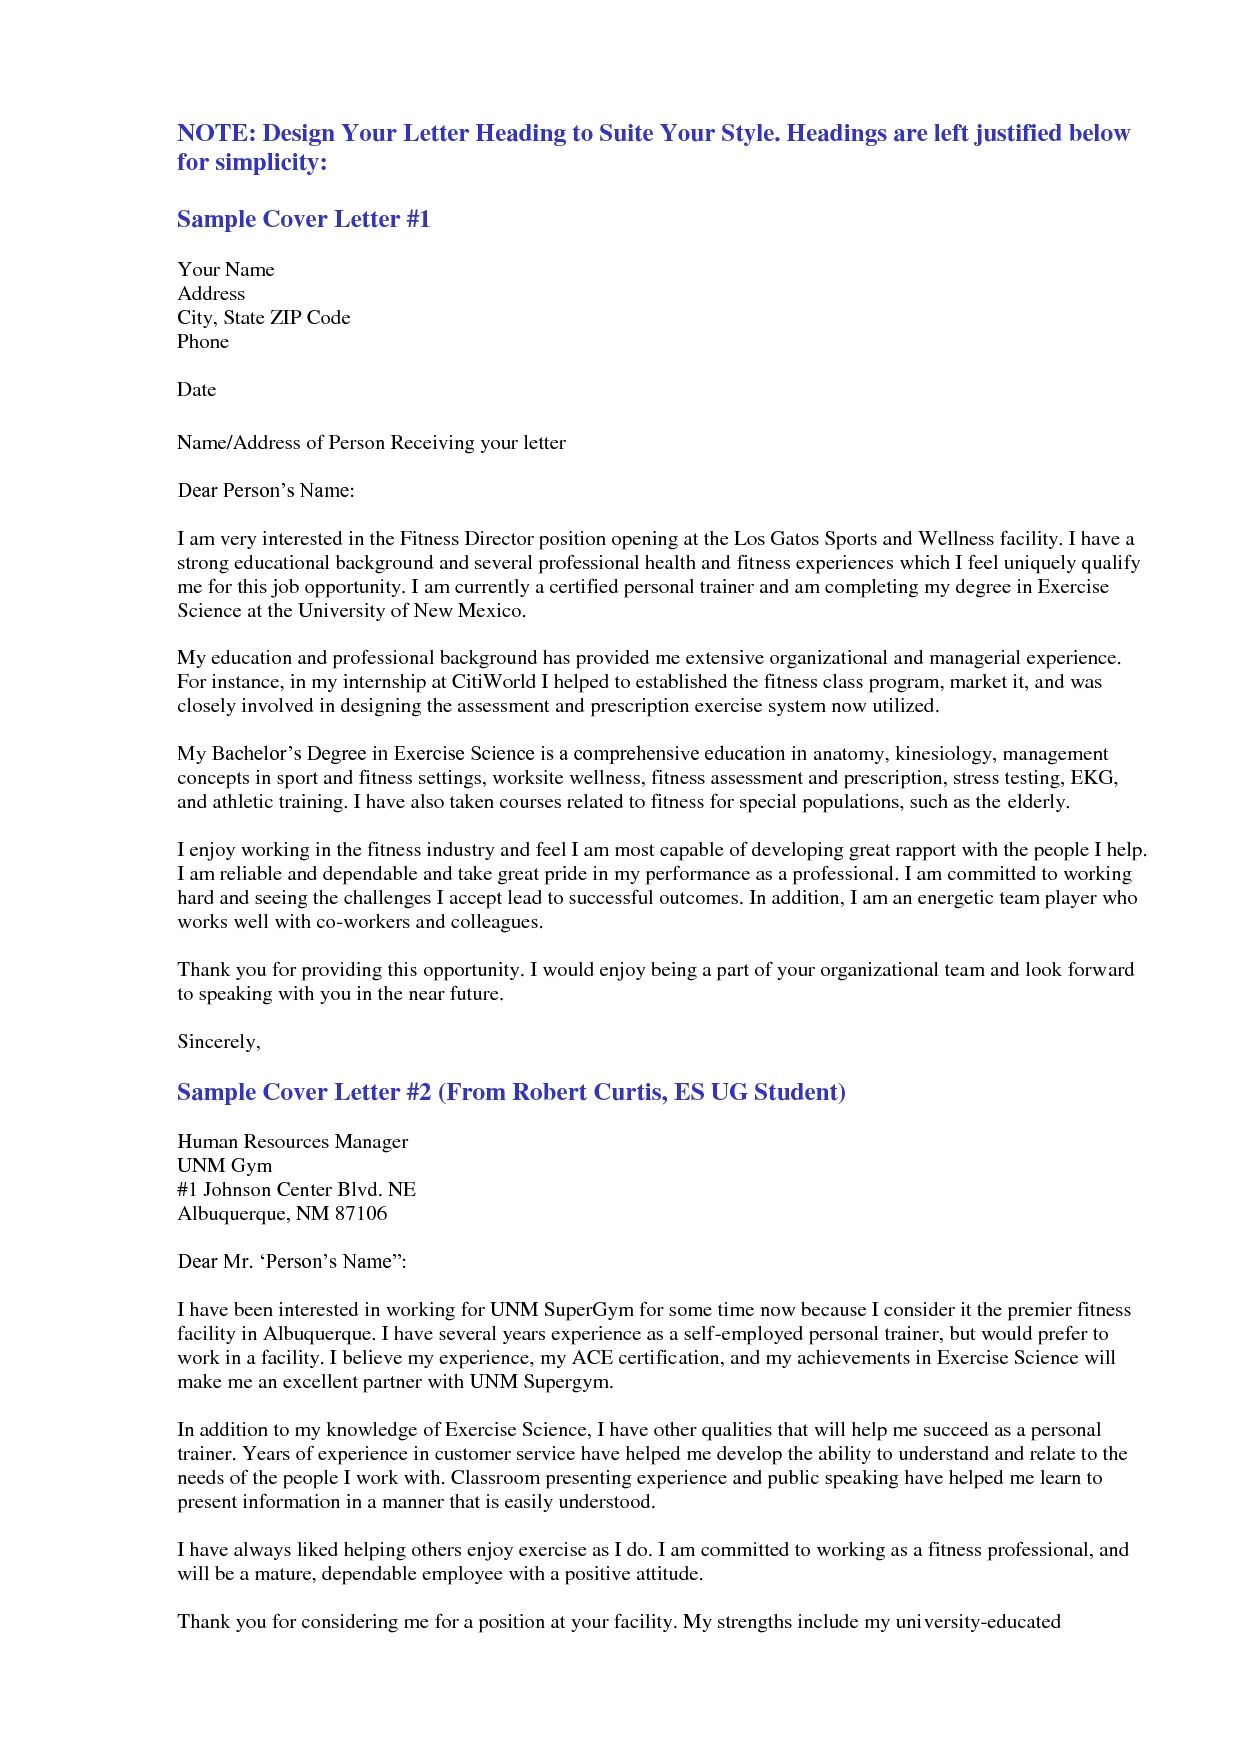 Letter Heading Website Resume Cover Letter News To Go 2